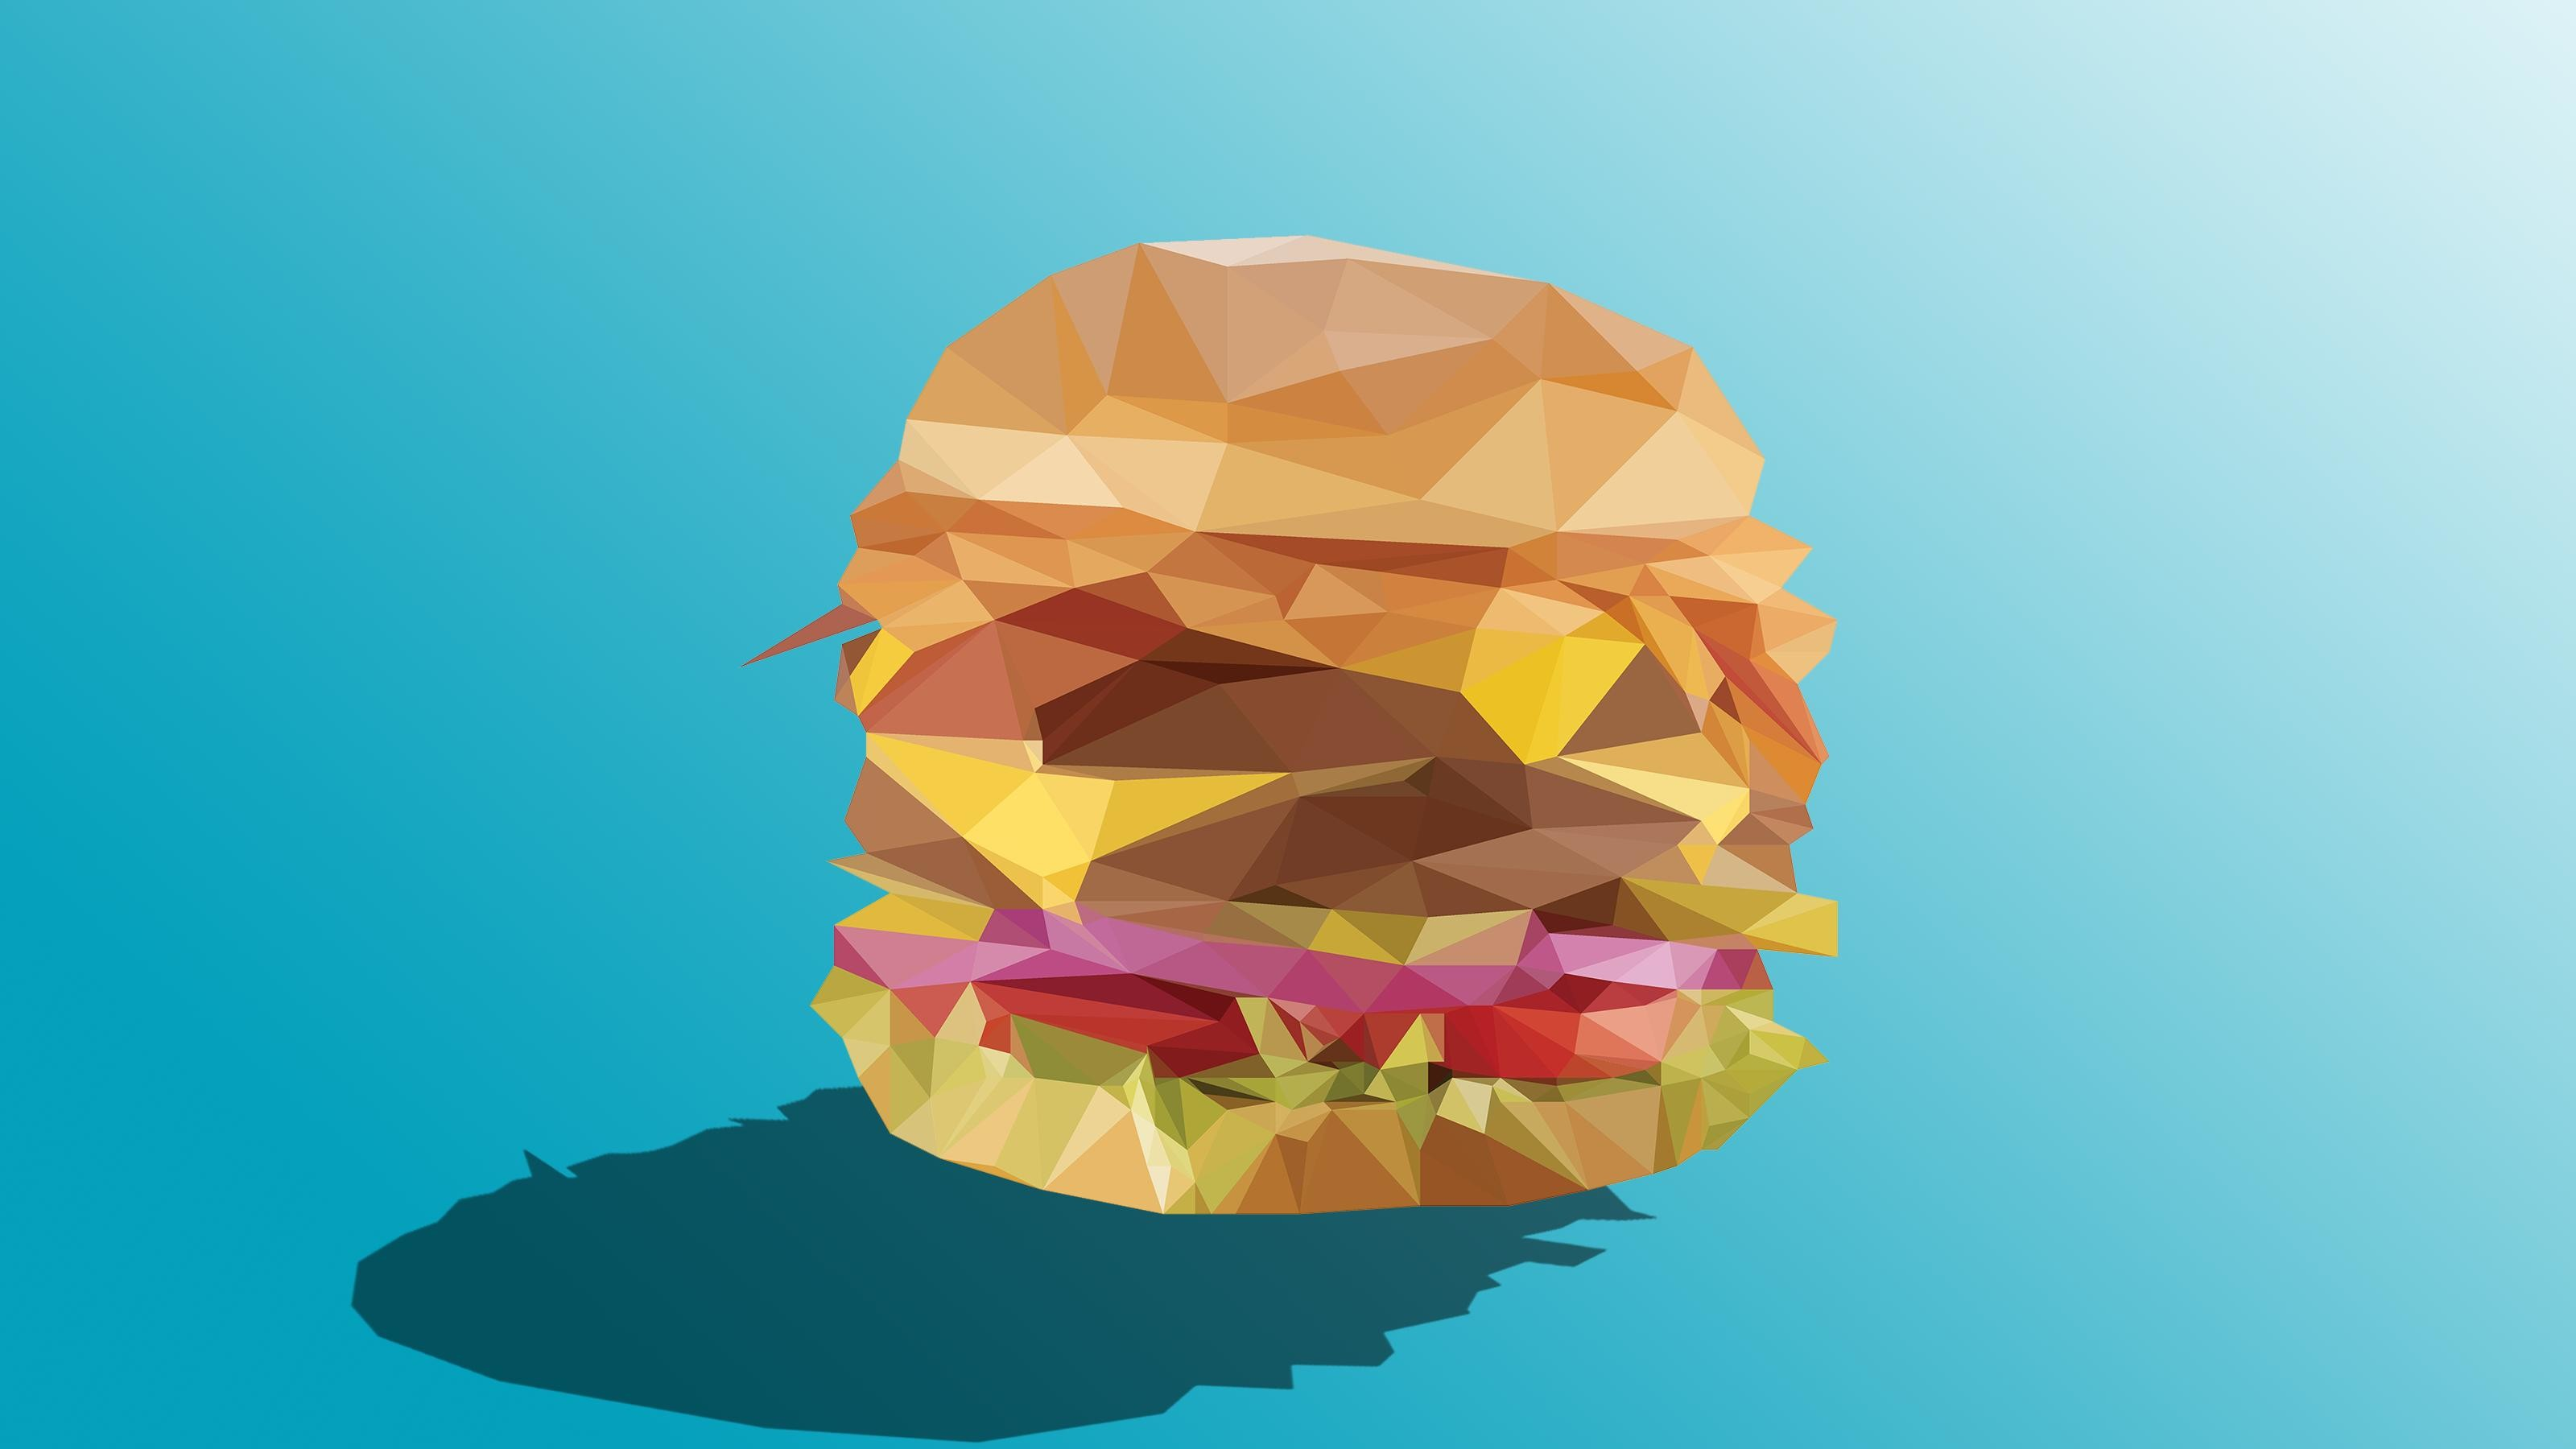 3200x1800 Low Poly Burger (3200 x 1800) ...